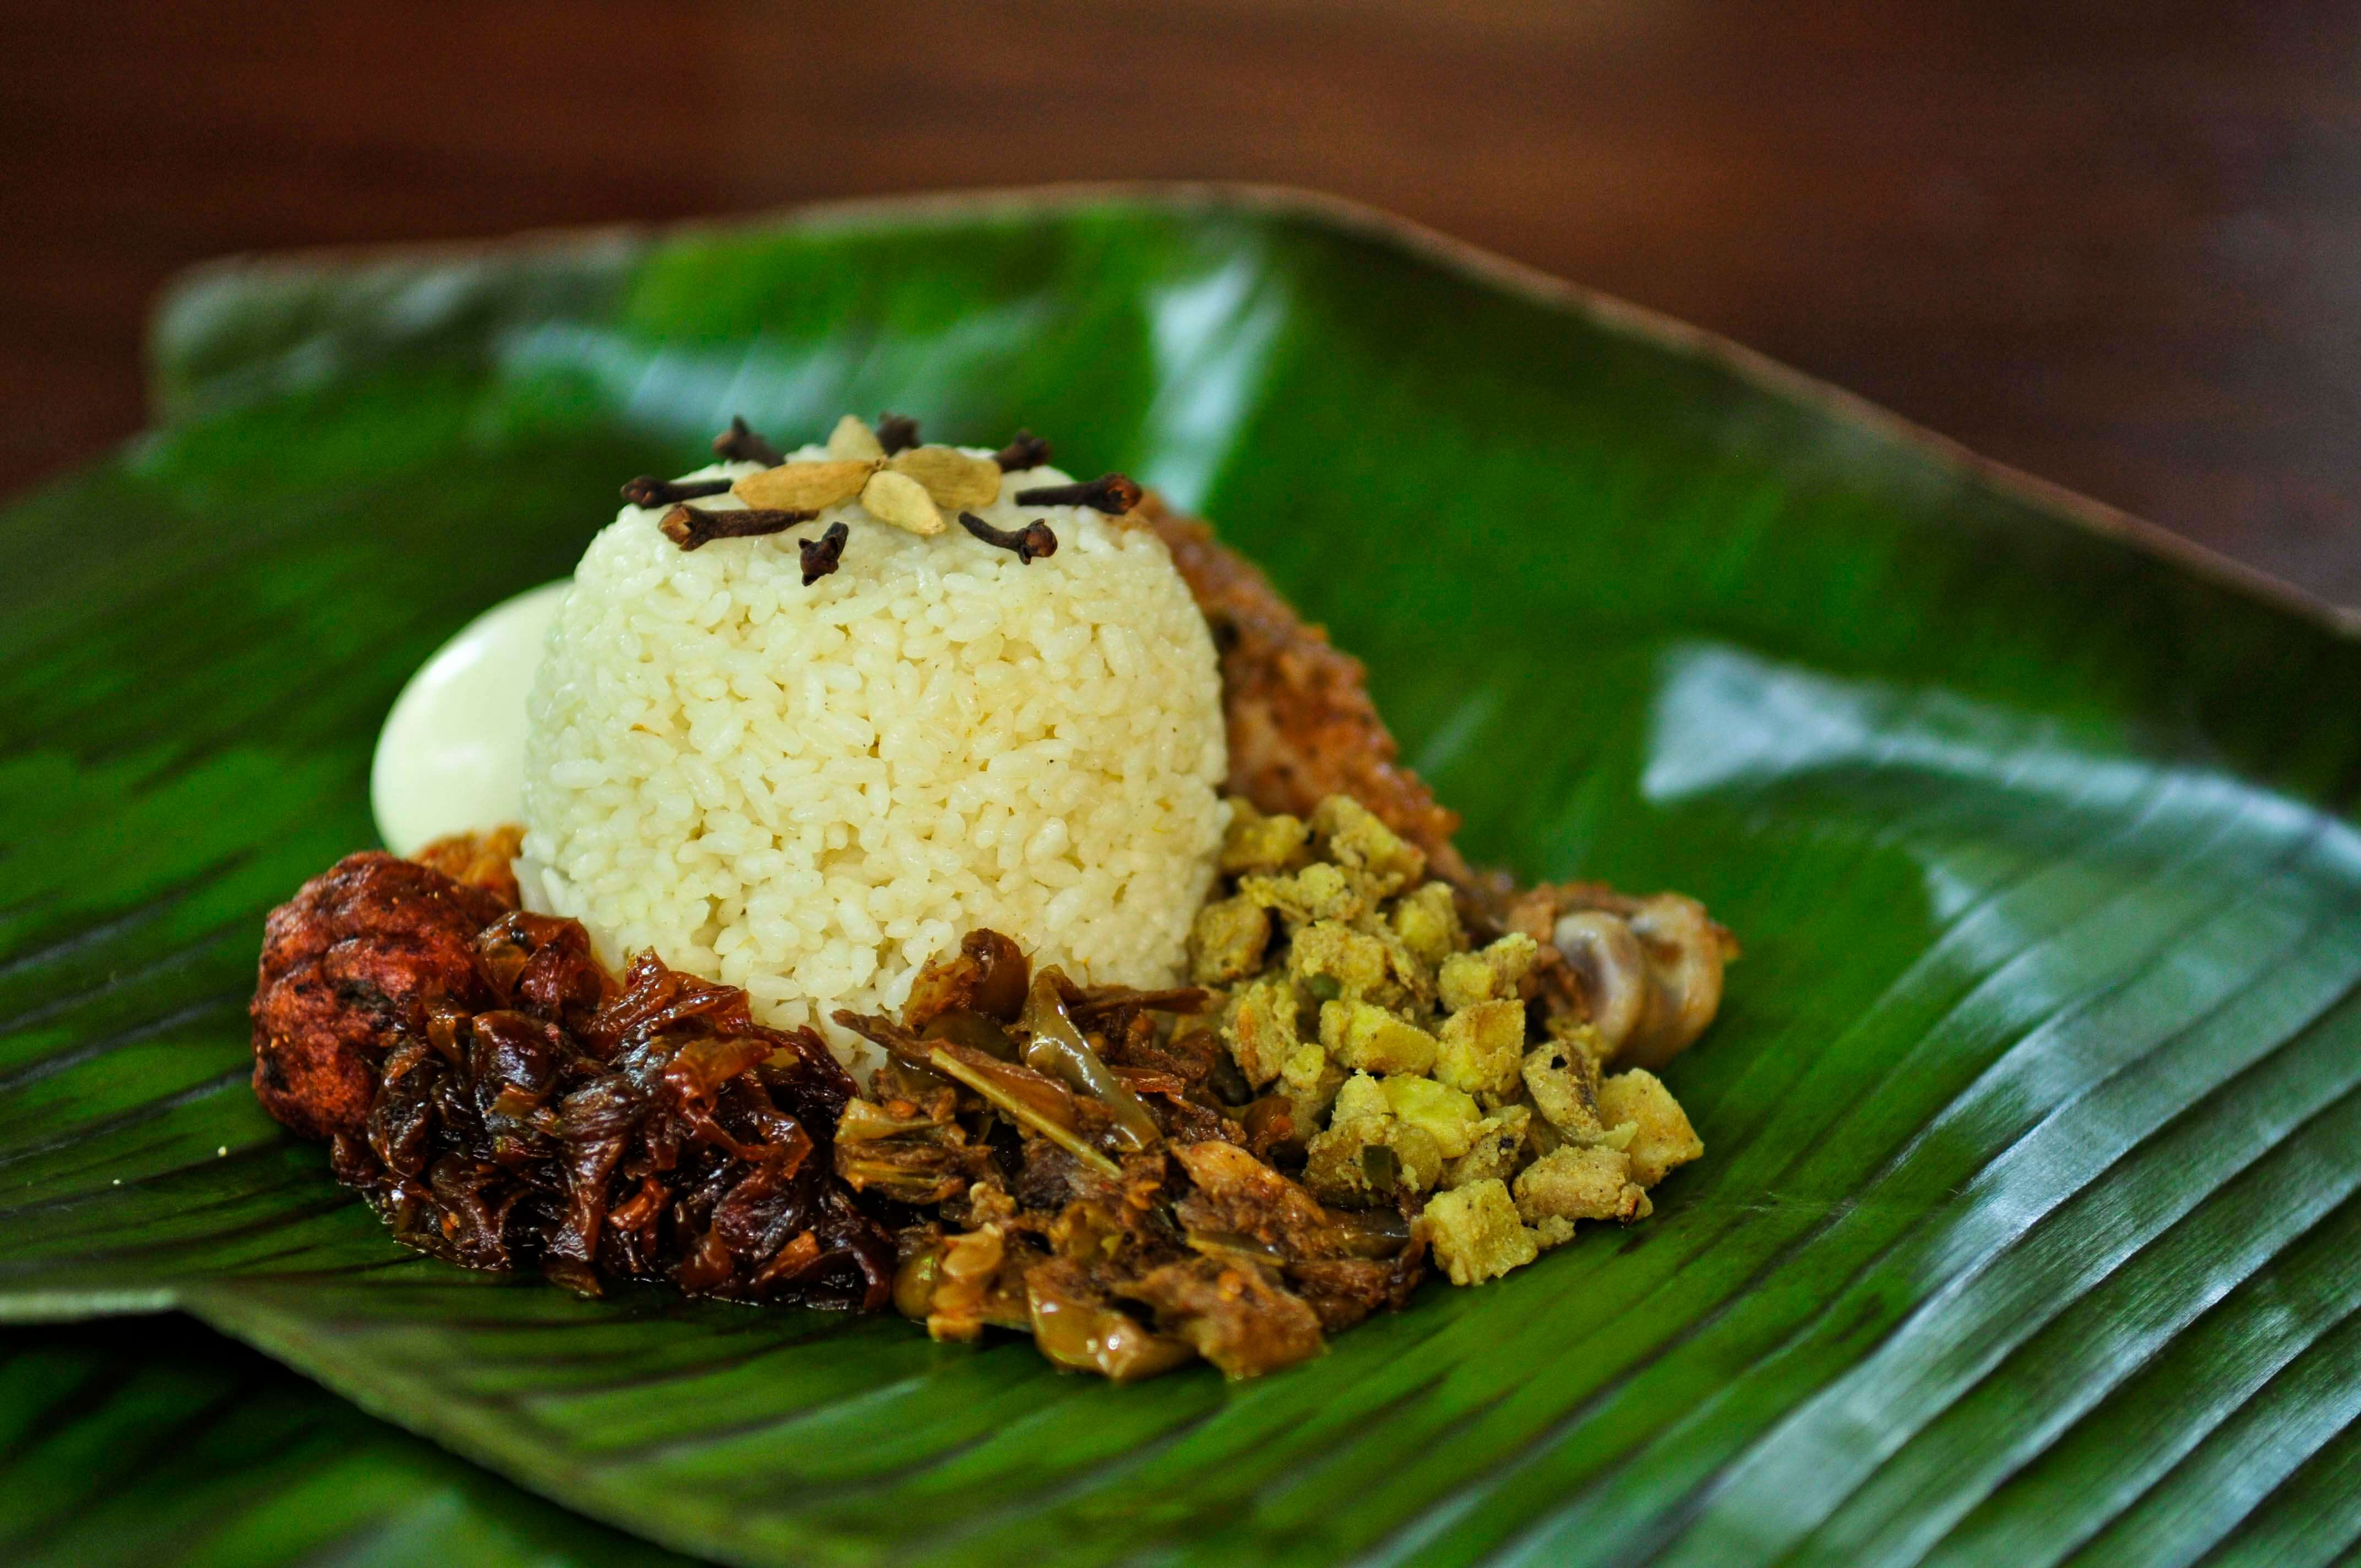 rice and meat on a banana leaf